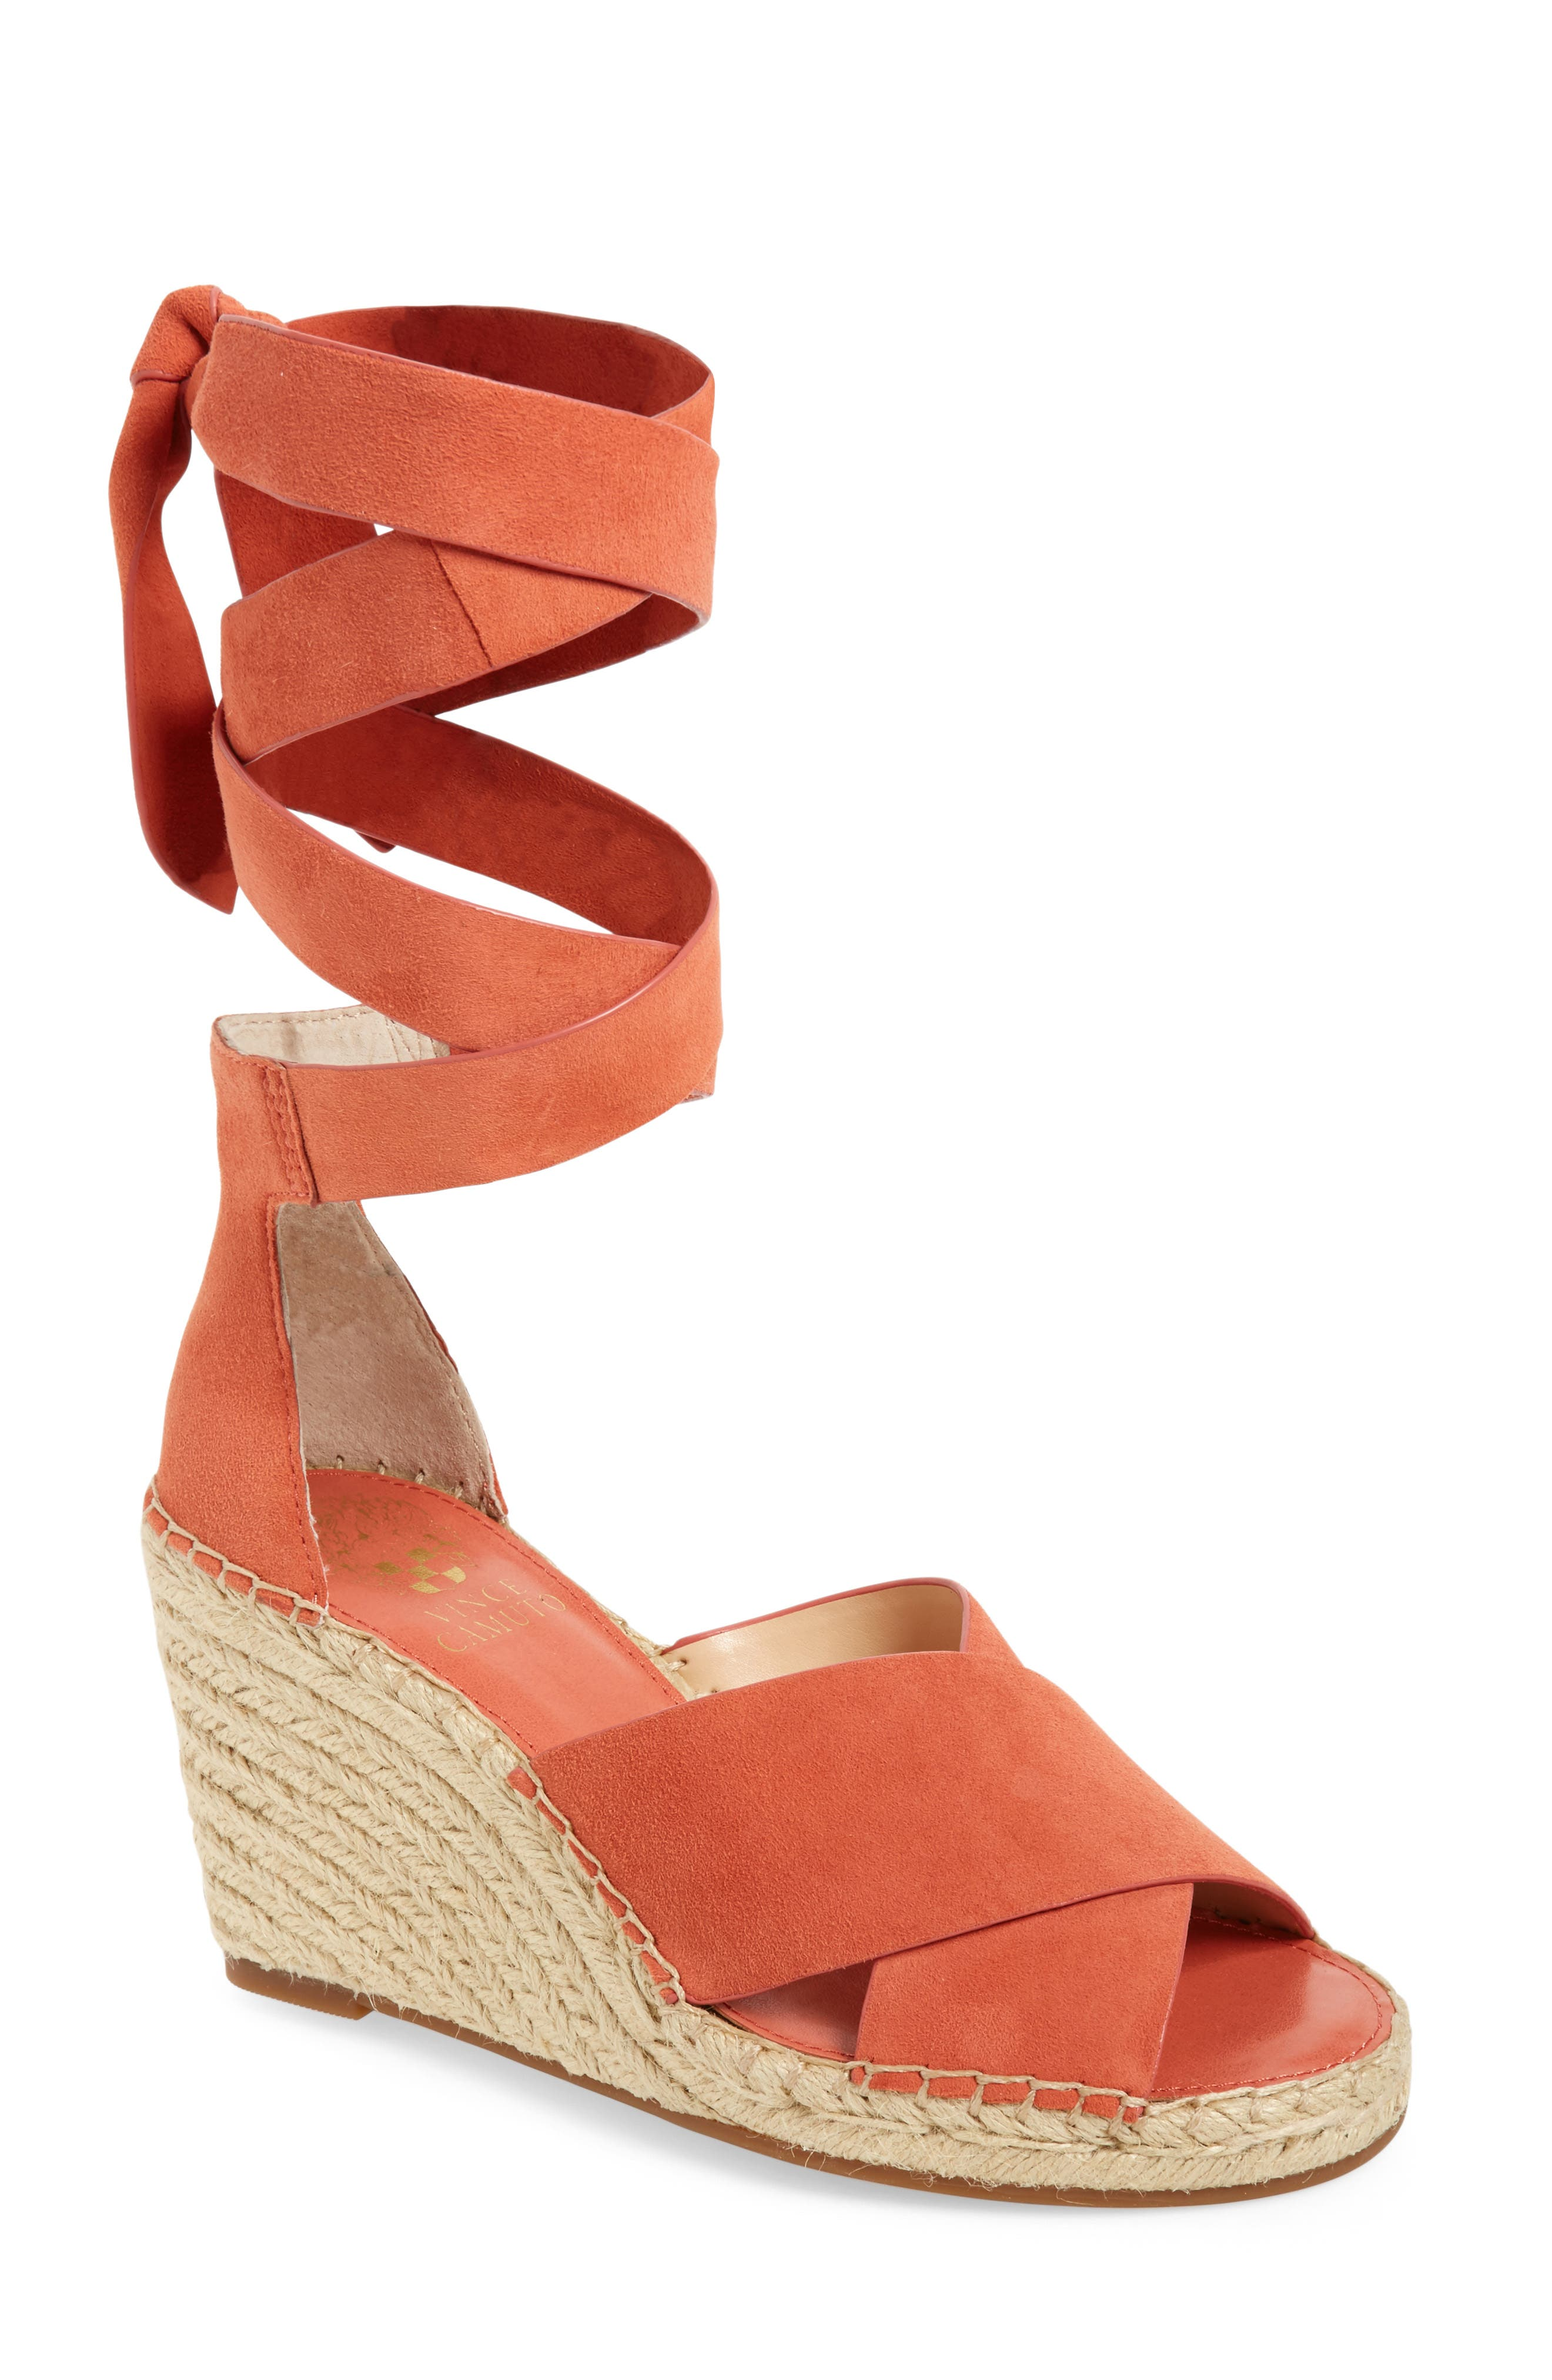 Leddy Wedge Sandal,                         Main,                         color, Melon Daiquiri Suede